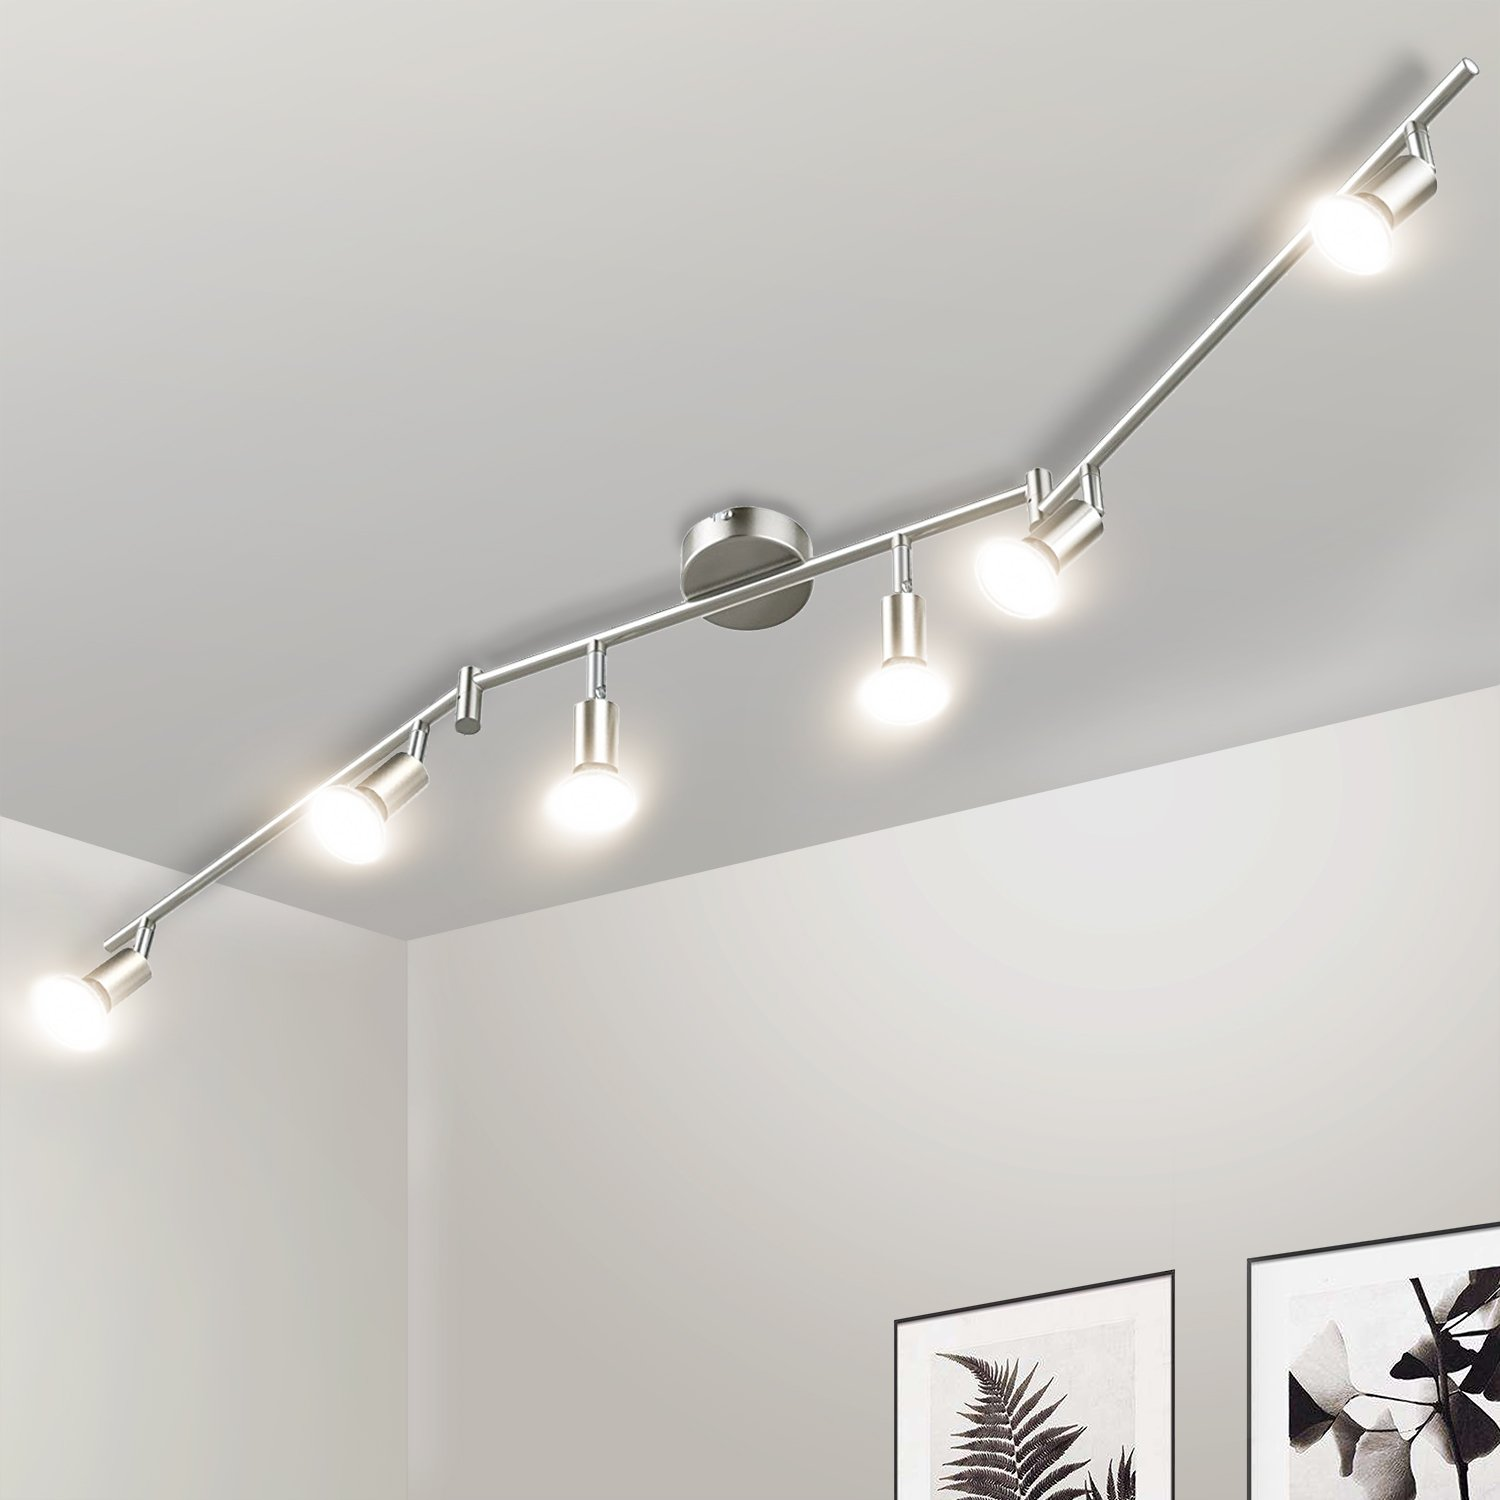 Interesting amazing affordable plafonnier spots led grtec spots de plafond plafonnier de salon - Luminaire plafond rampant ...